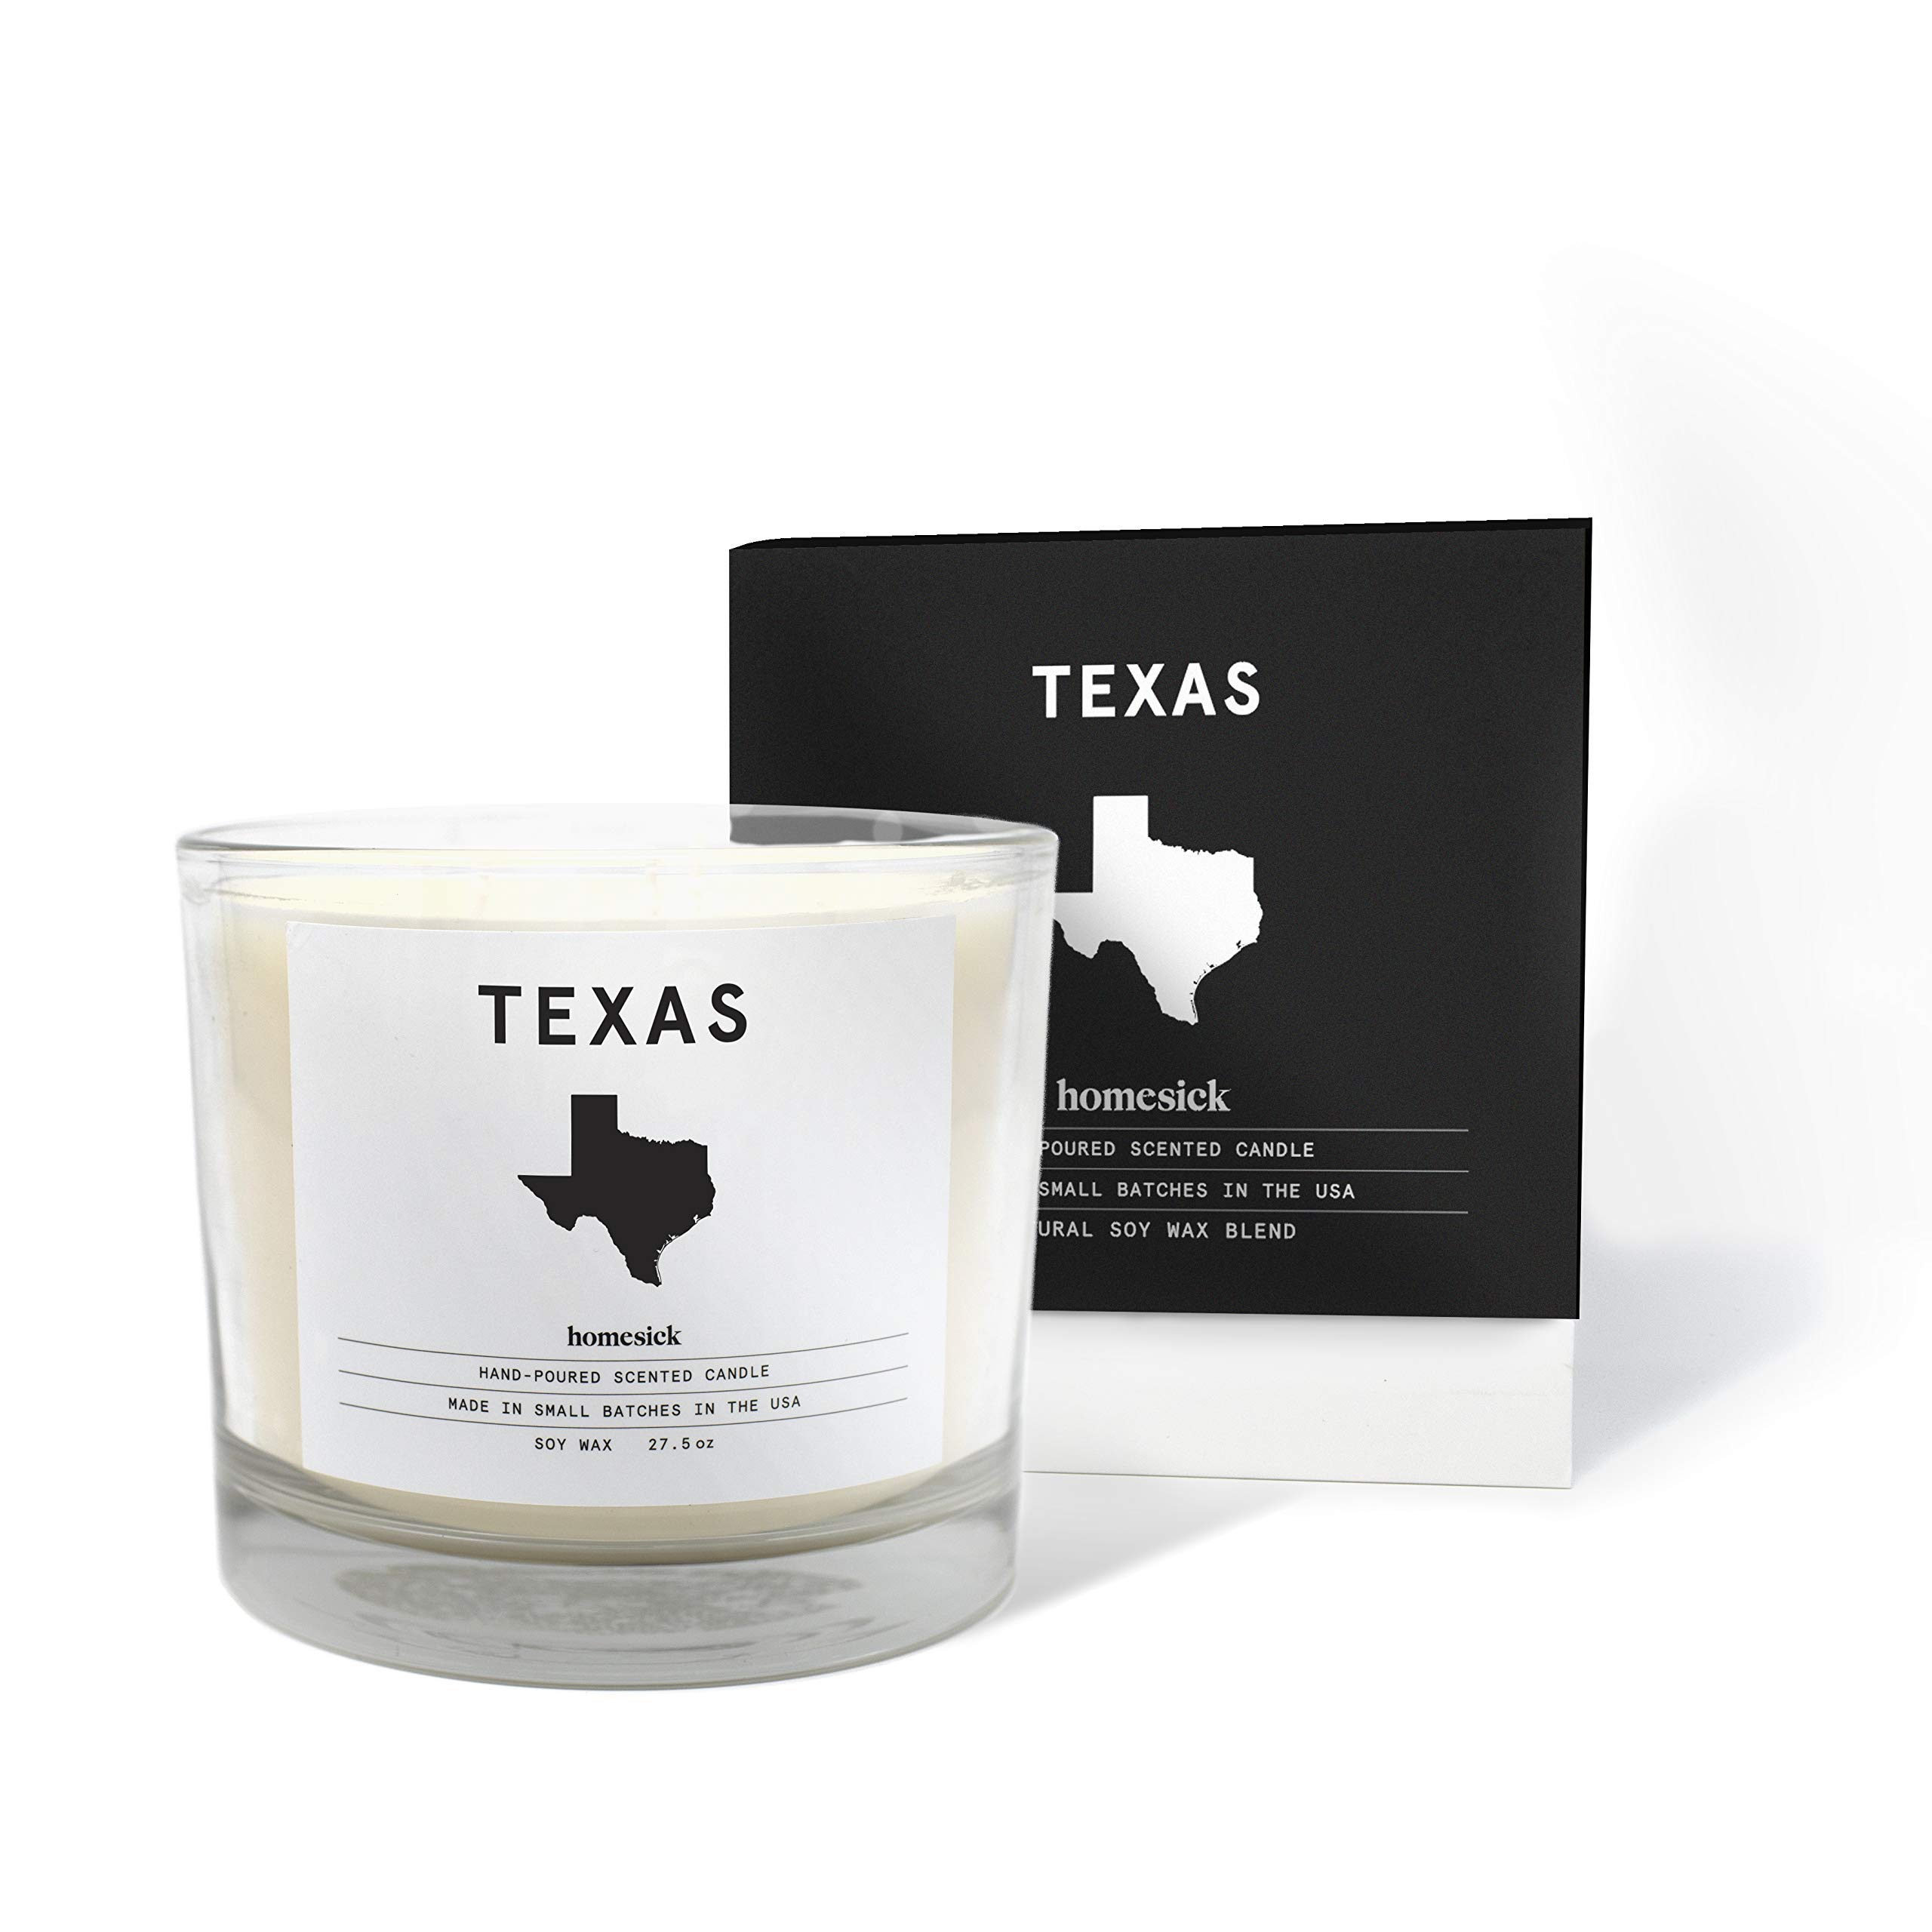 Homesick Soy Wax-27.5 oz 3 Wick Scented Candle (90 to 110 hrs Burn Time), Texas